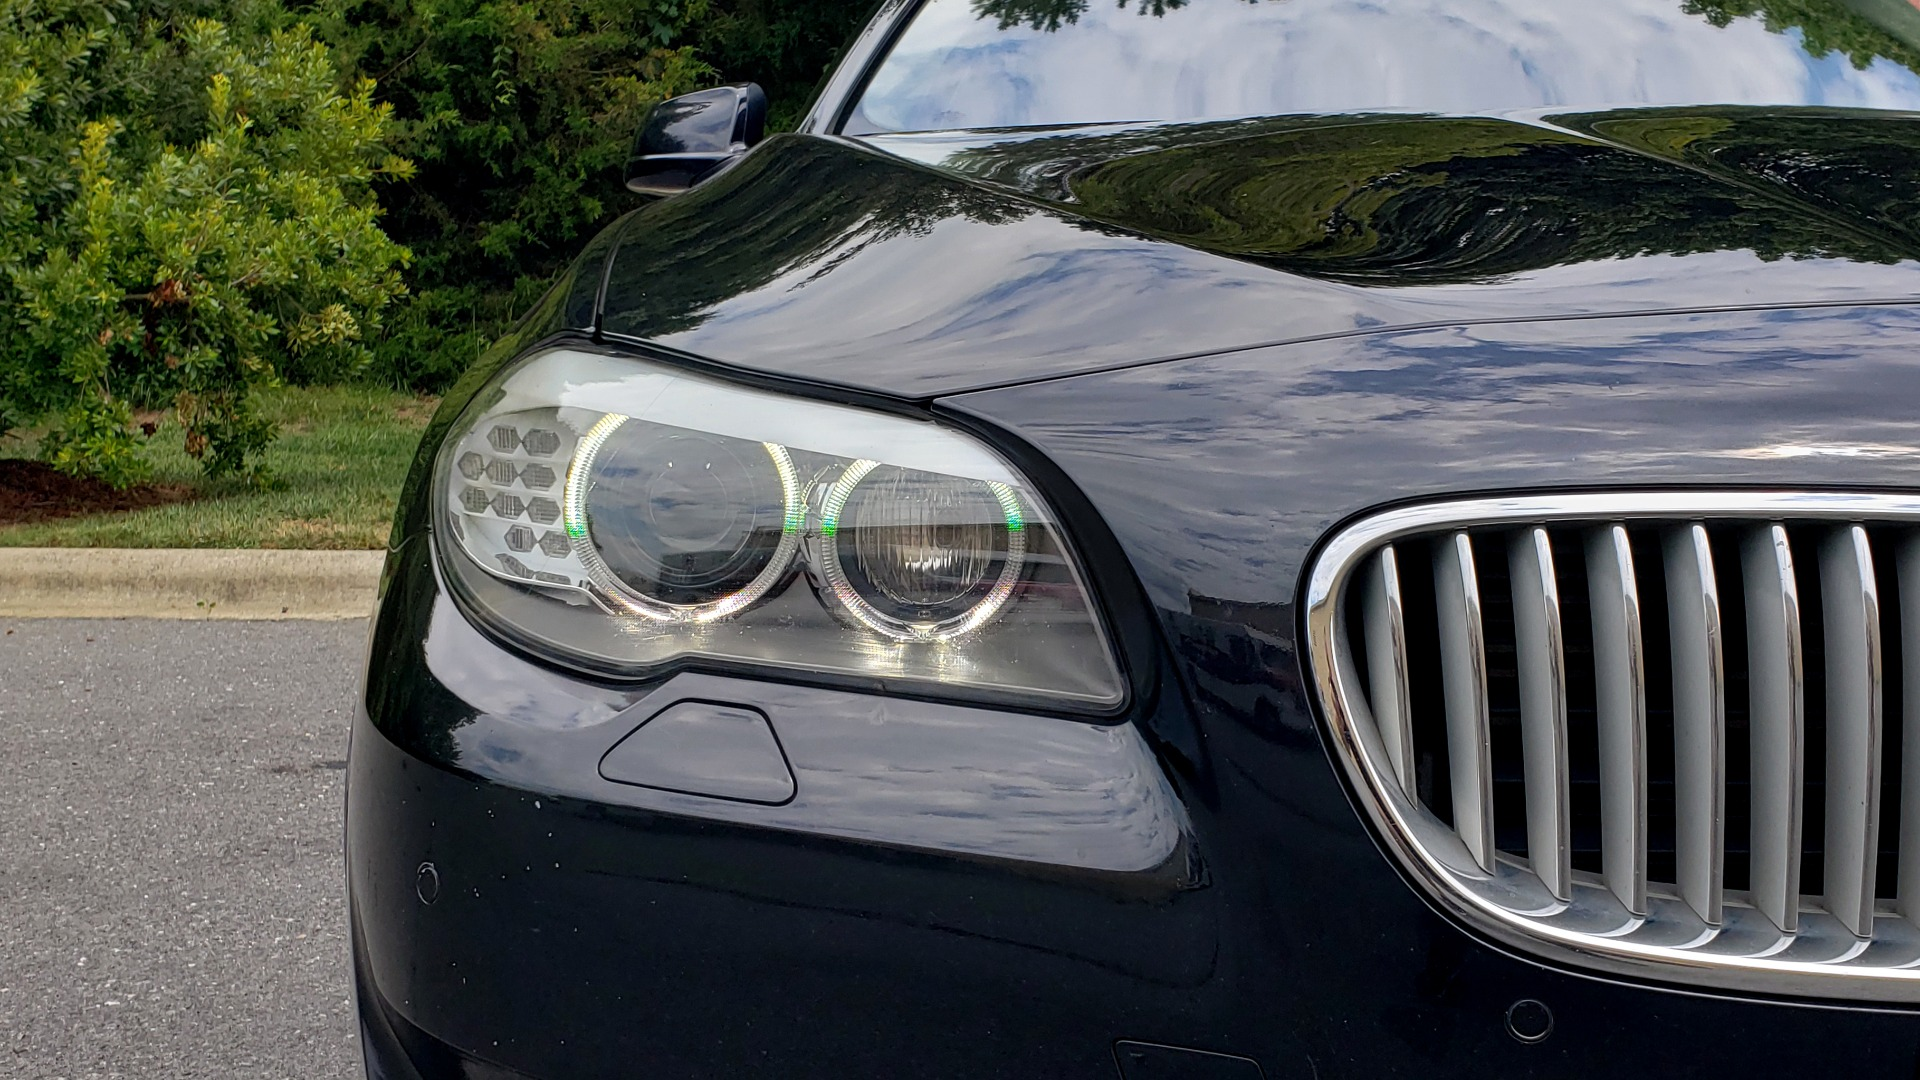 Used 2013 BMW 5 SERIES 550I XDRIVE LUX PKG / EXEC / COLD WTHR / NAV / SUNROOF / REARVIEW for sale Sold at Formula Imports in Charlotte NC 28227 17